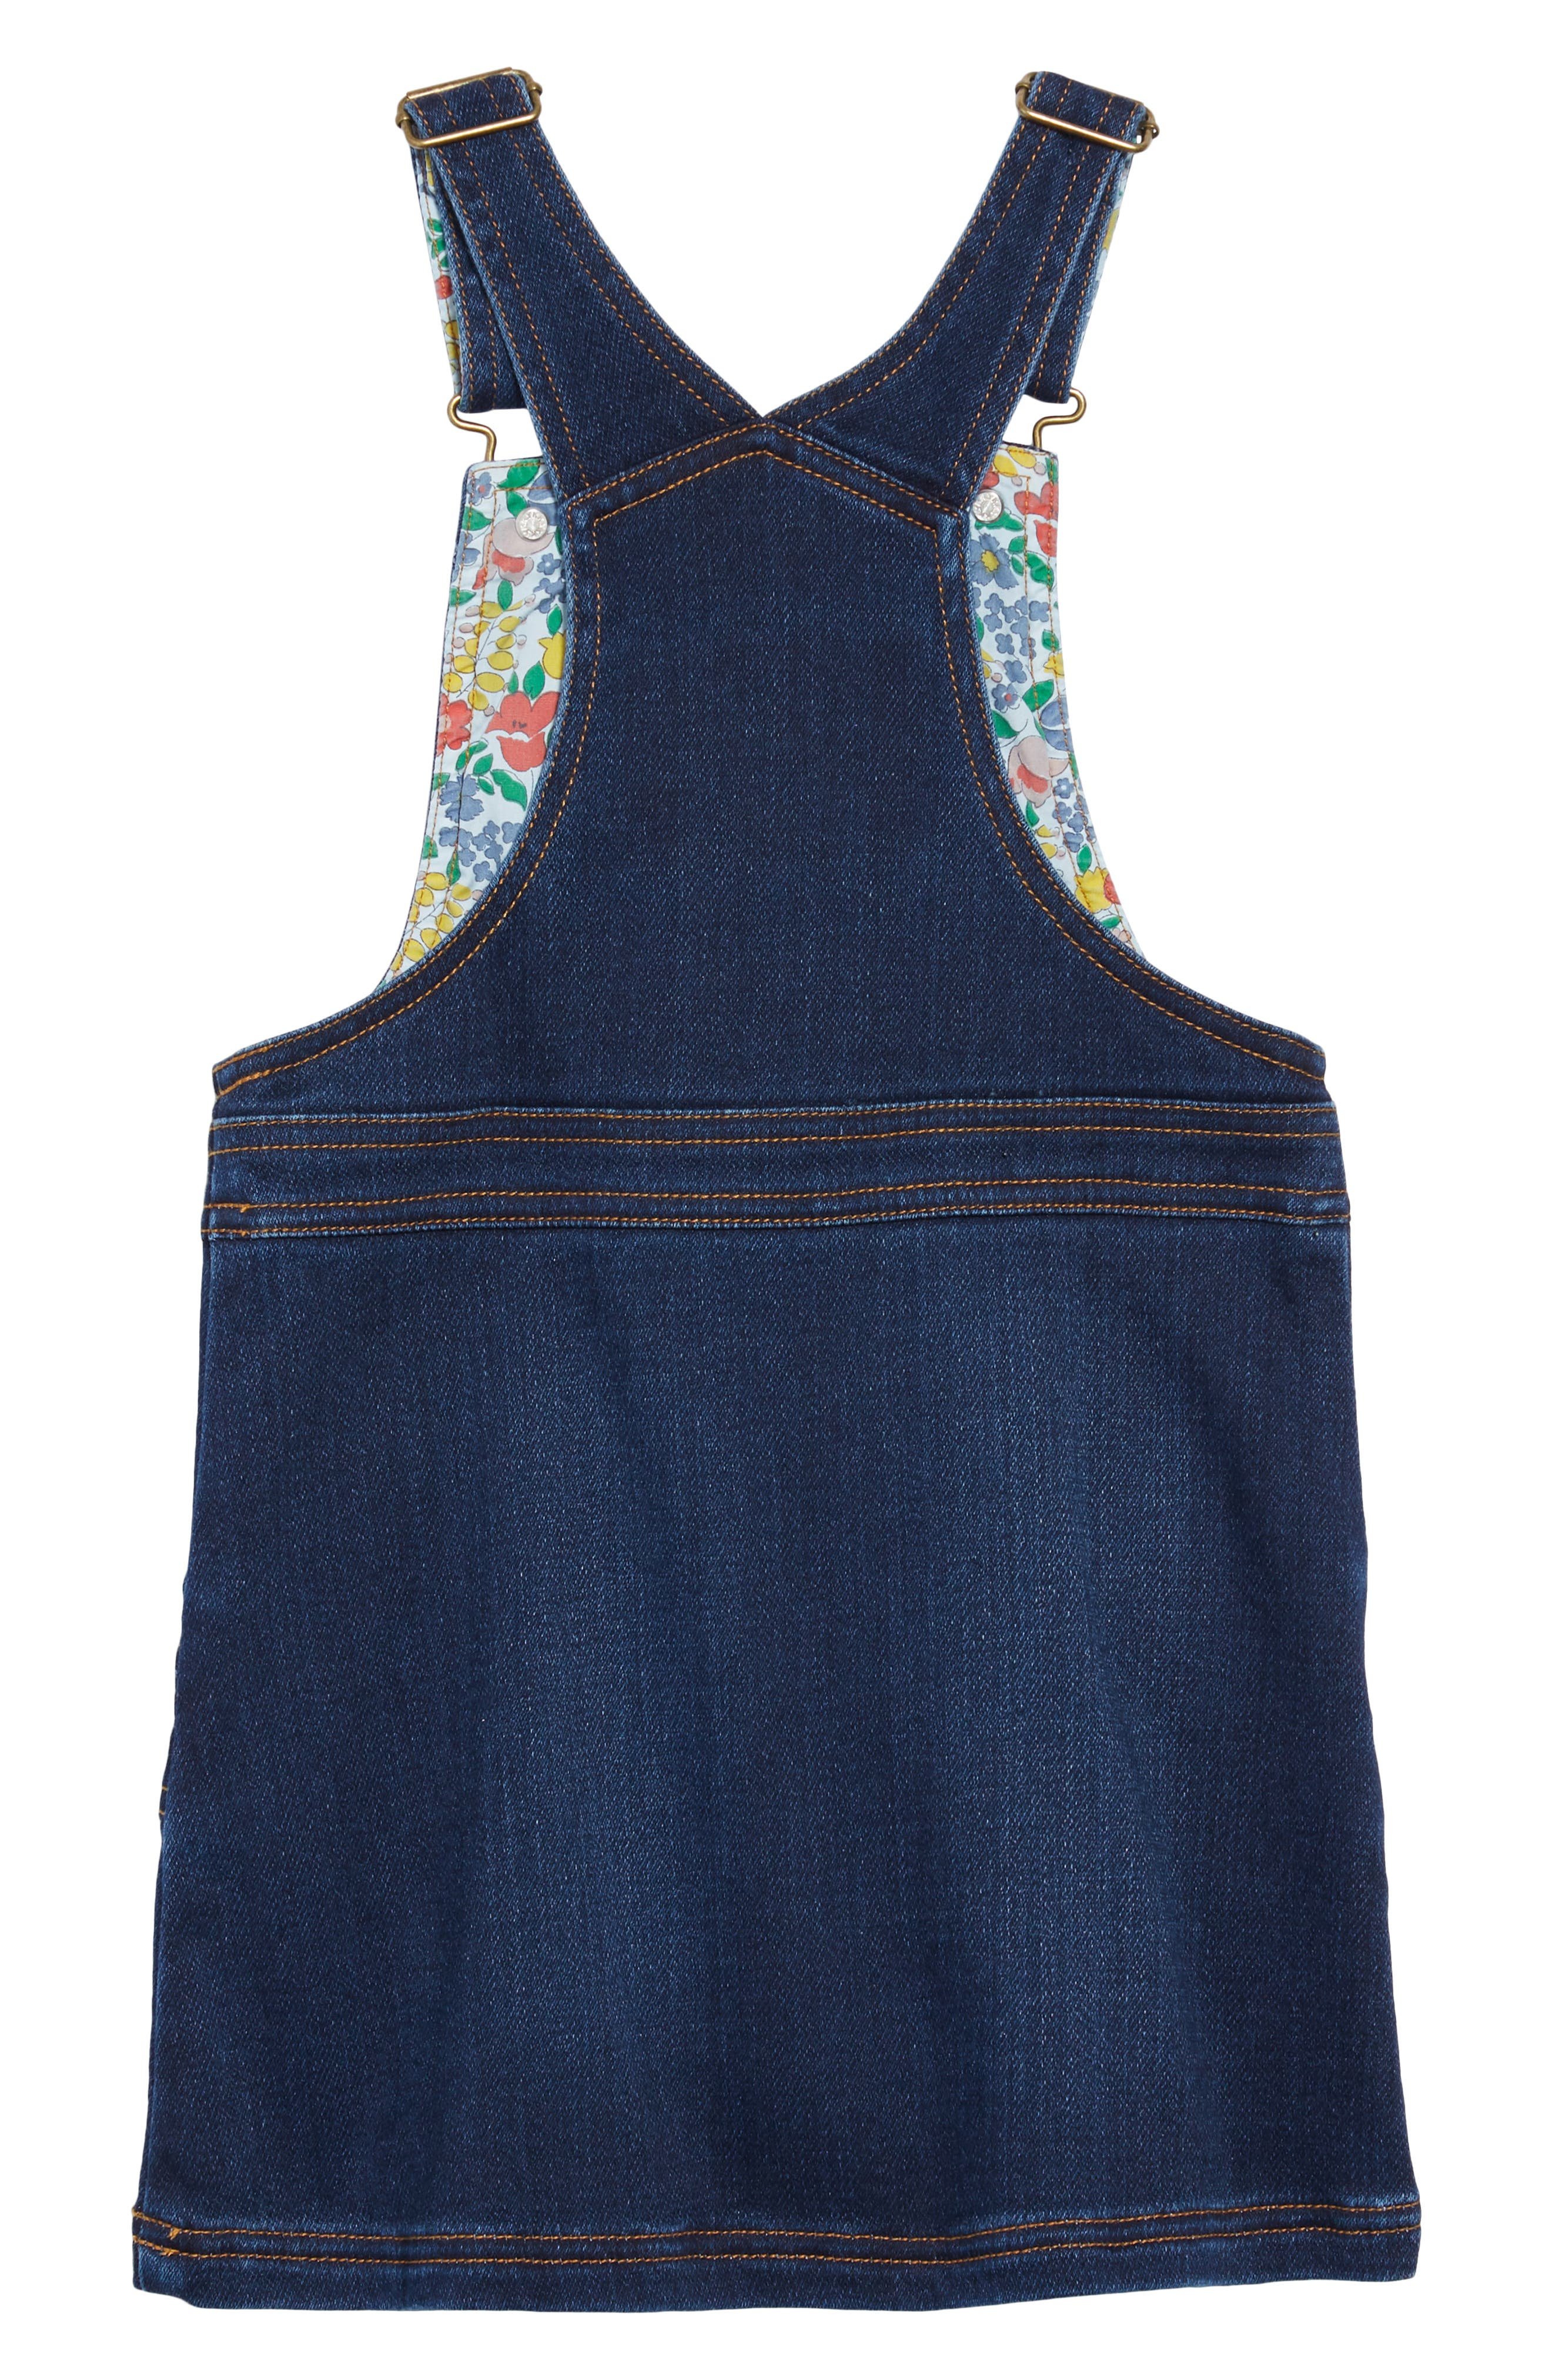 Denim Dungaree Overall Dress,                             Alternate thumbnail 2, color,                             MID VINTAGE